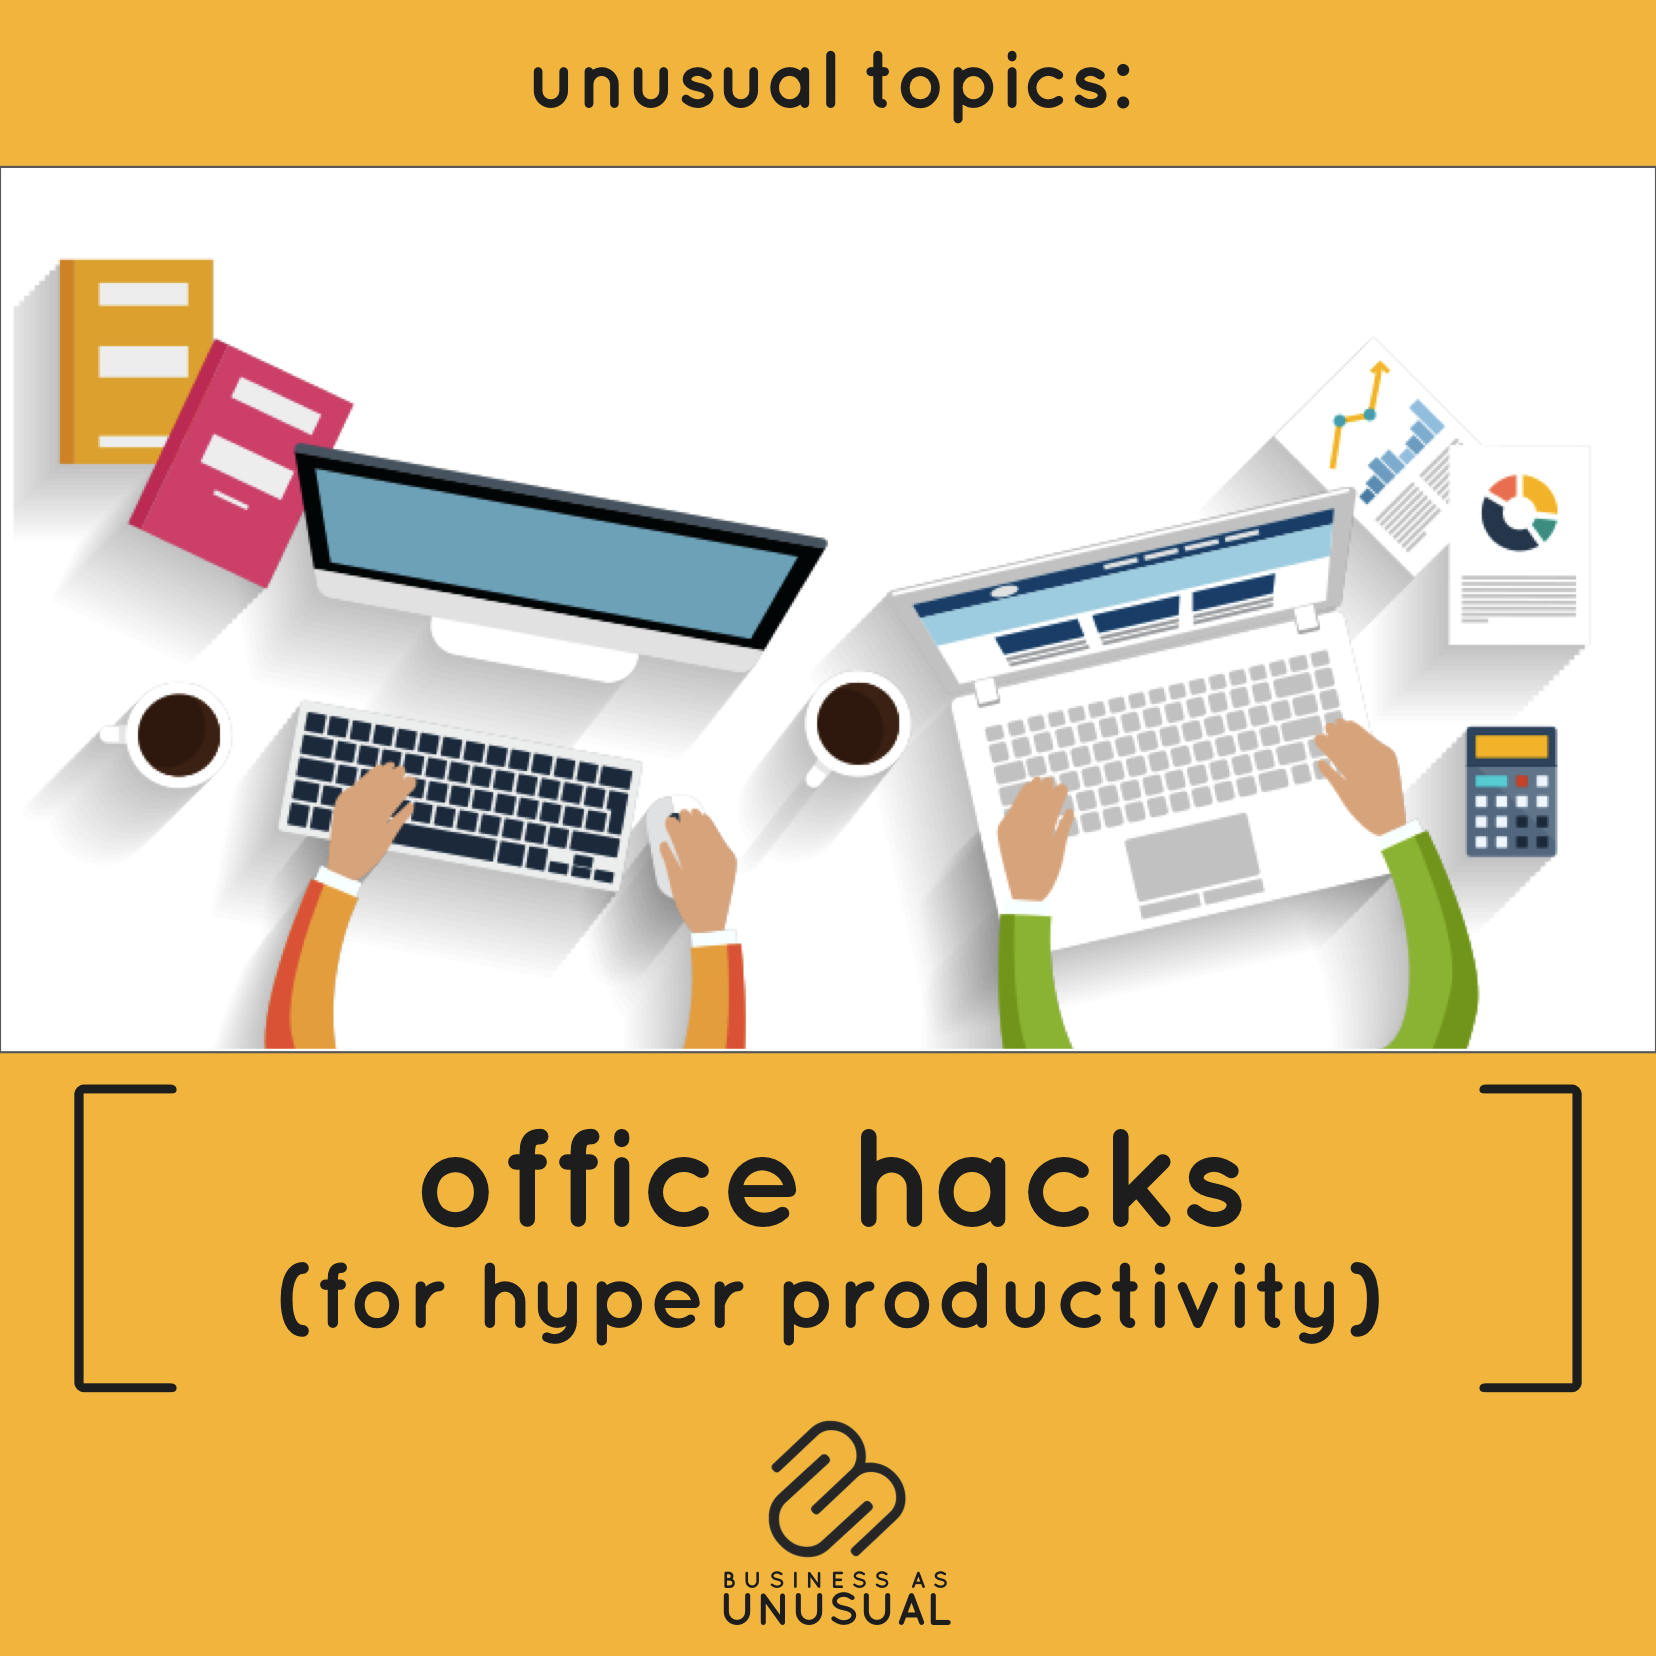 Office Hacks for Hyper Productivity